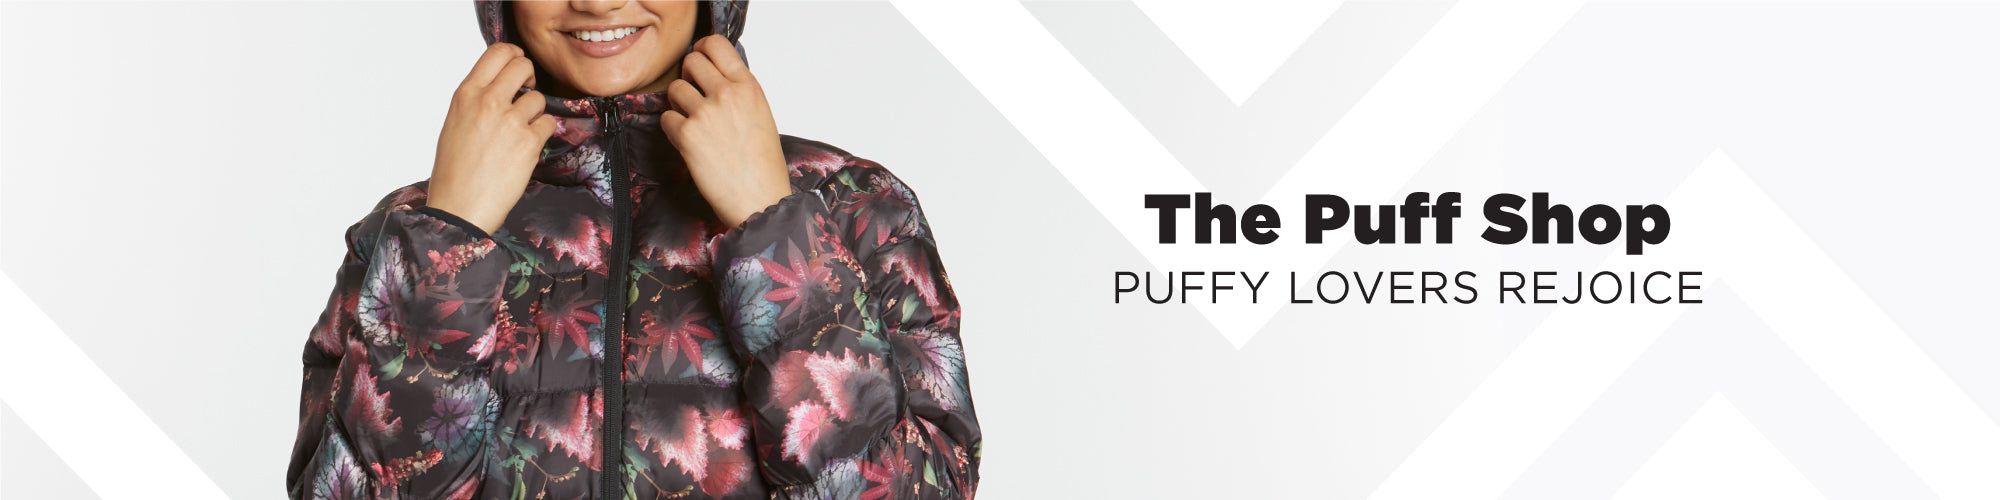 The Puff Shop